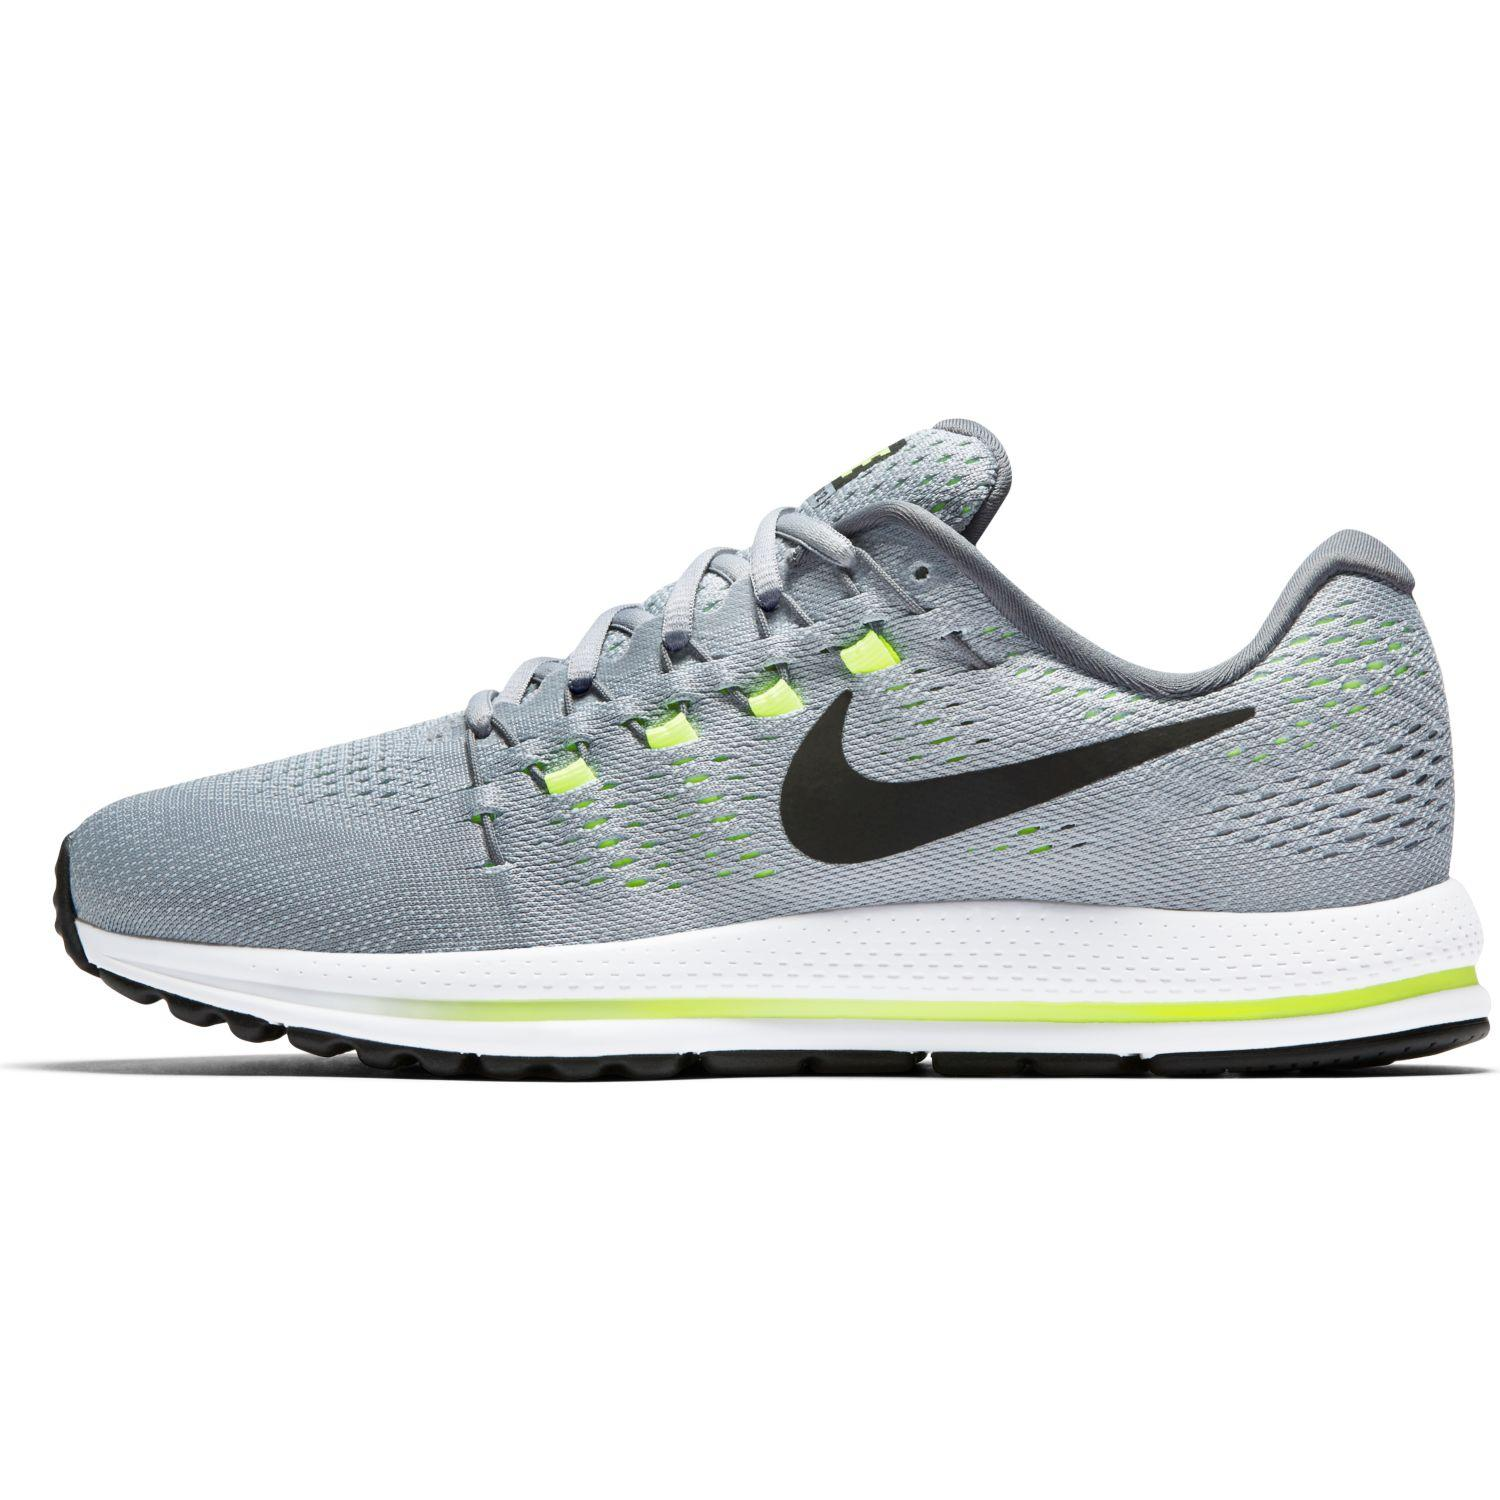 reputable site f5759 f324d Nike Shoes Air Zoom Vomero 12 Wolf Greyblack-cool Grey-pure Platinum -  Tifoshop.com